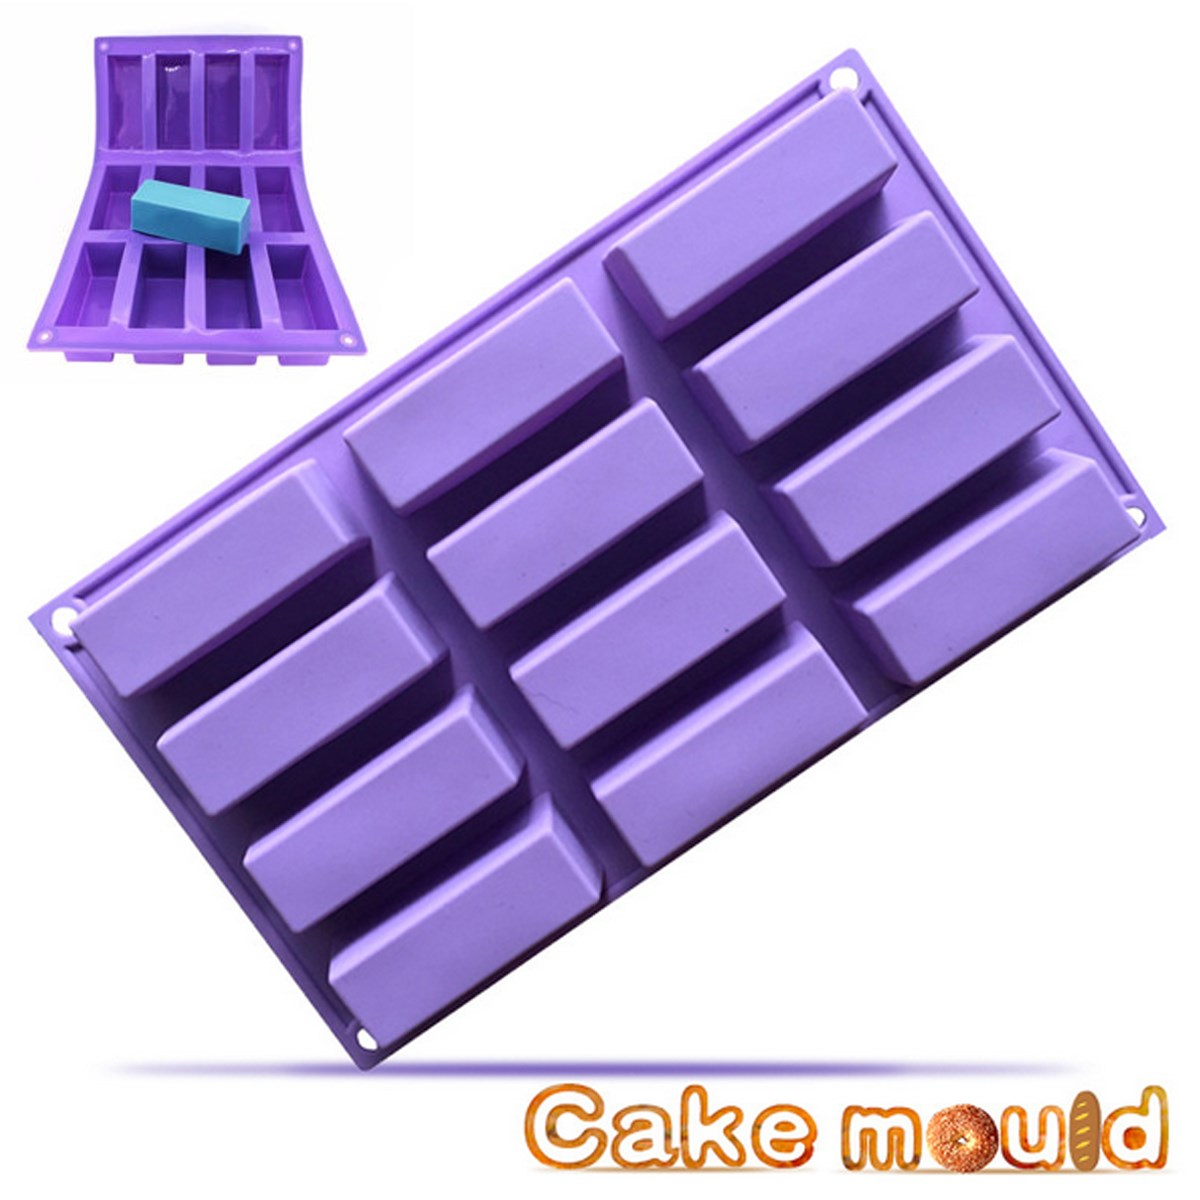 12 Cavity Rectangle Bar Soap Baking Ice Mold Silicone Mould Tray Home Craft SG